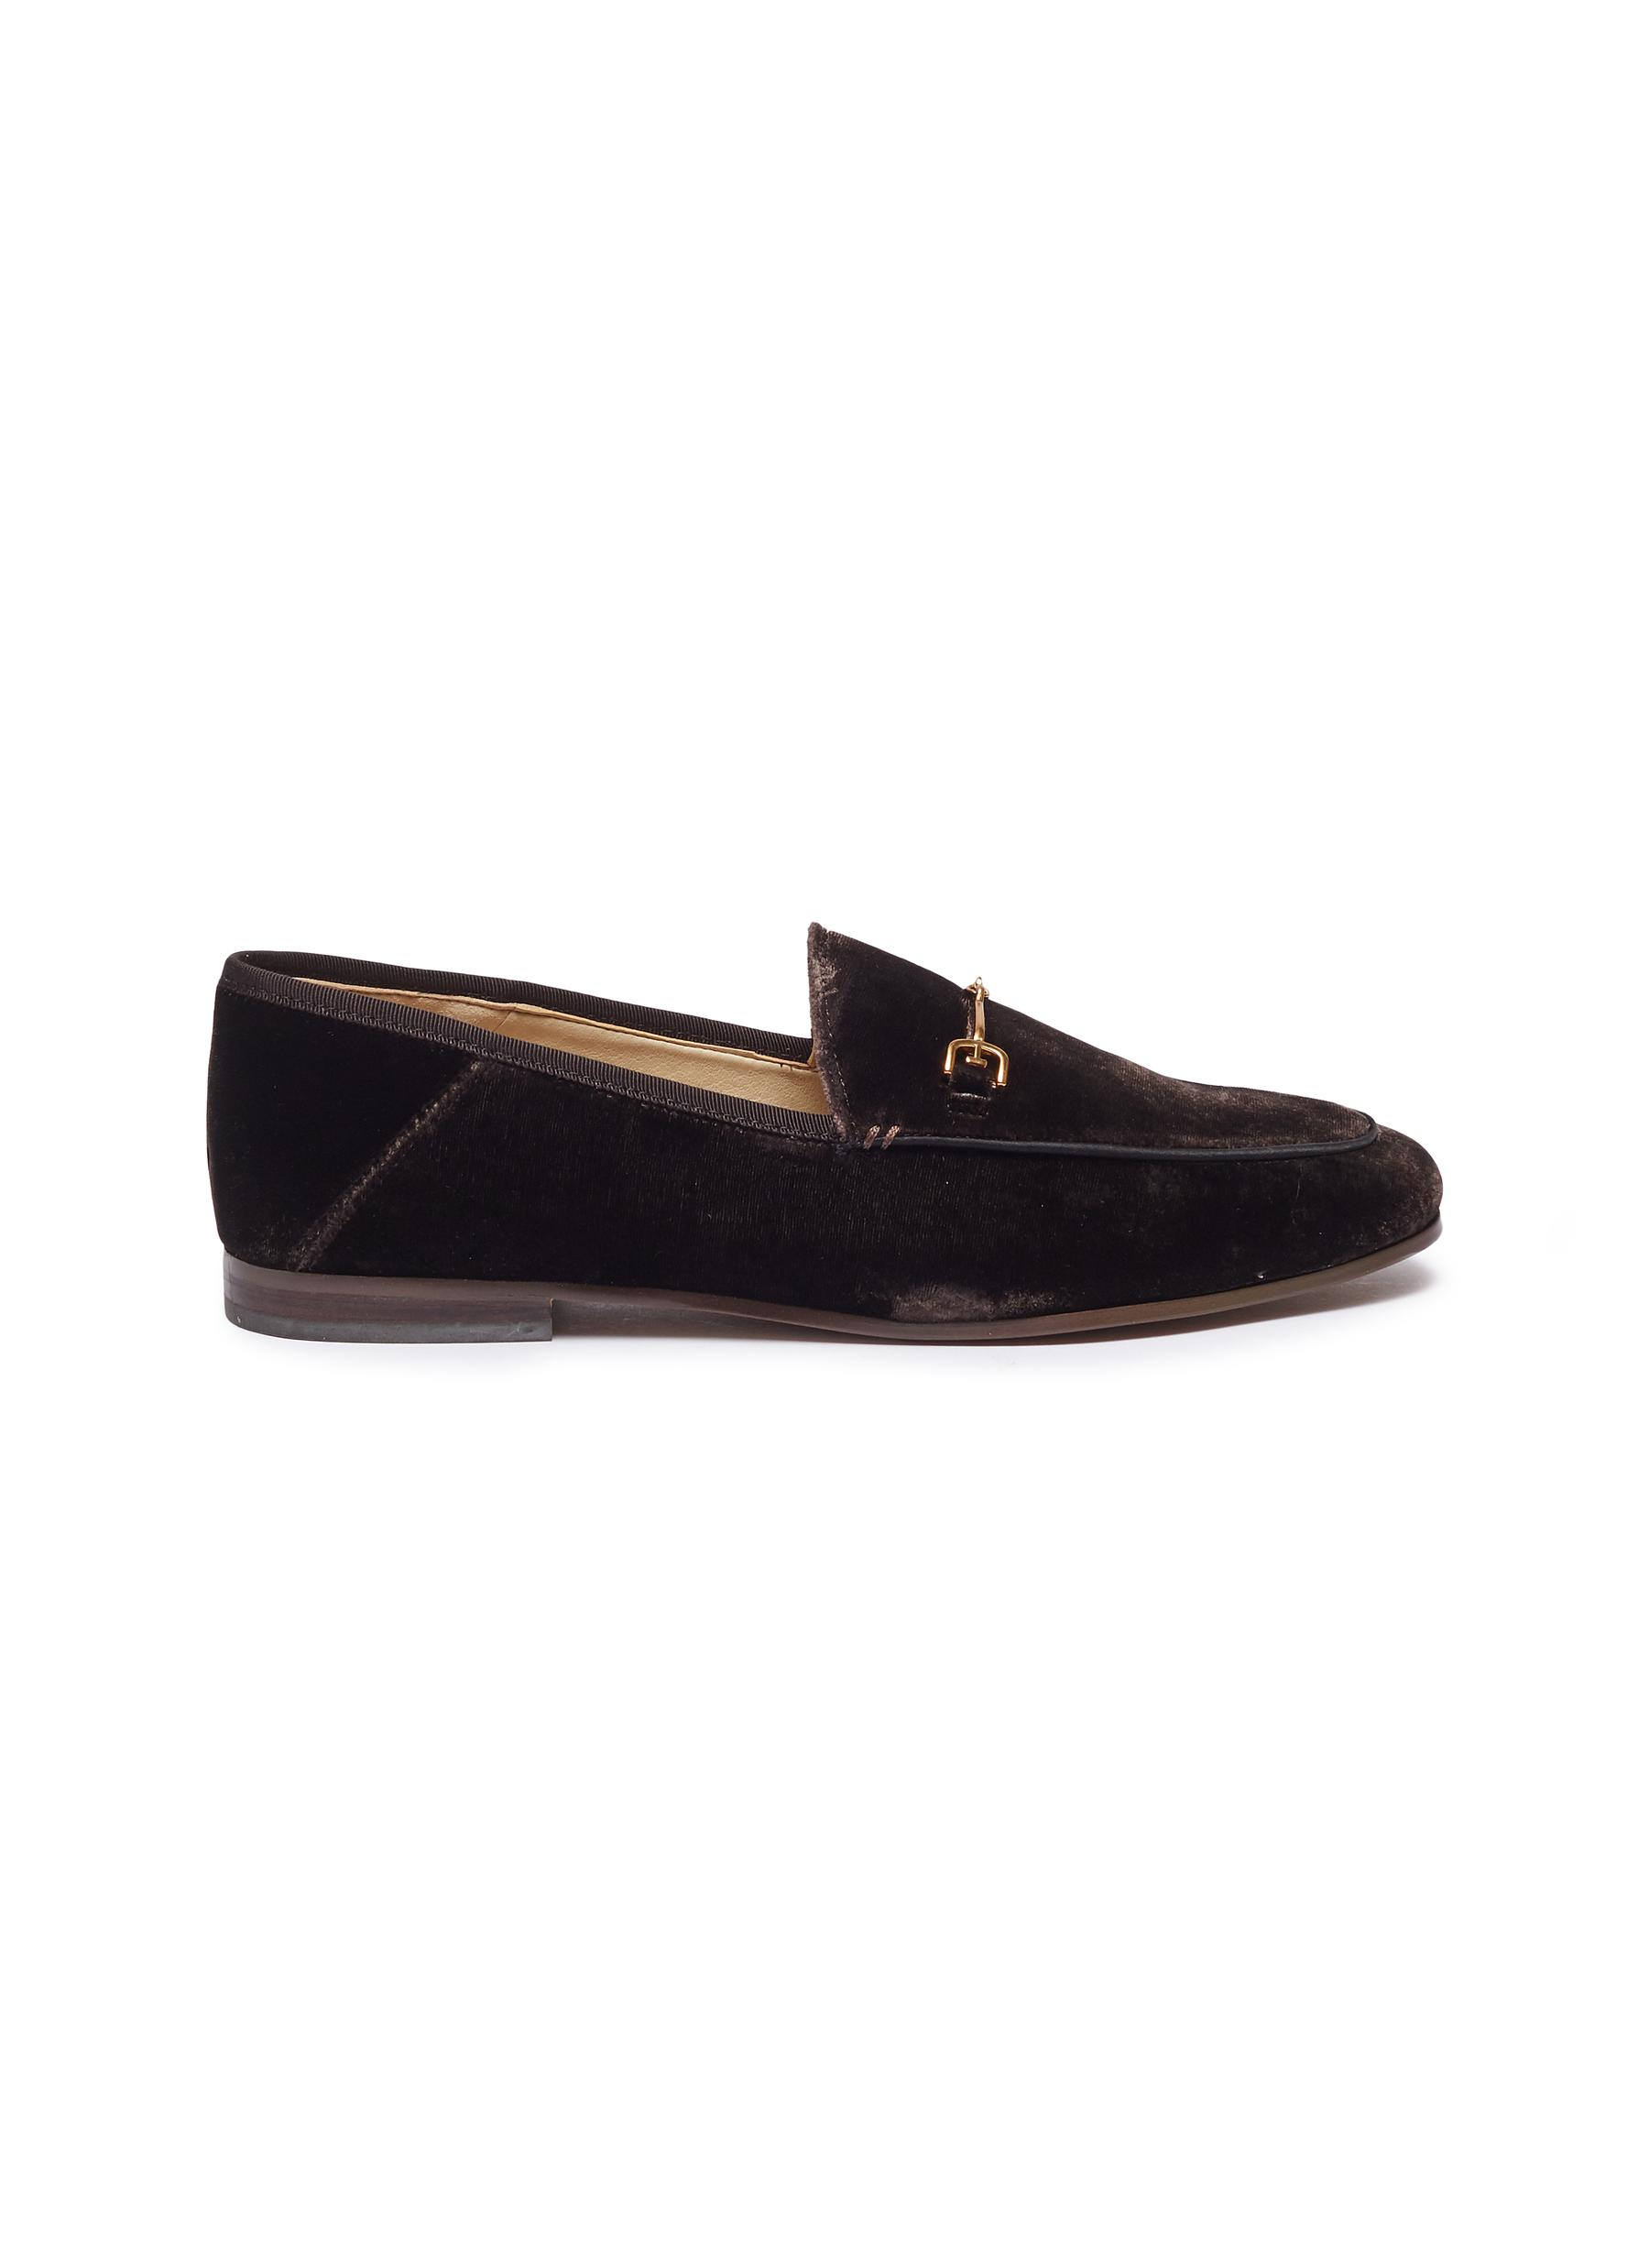 Loraine horsebit suede step-in loafers by Sam Edelman